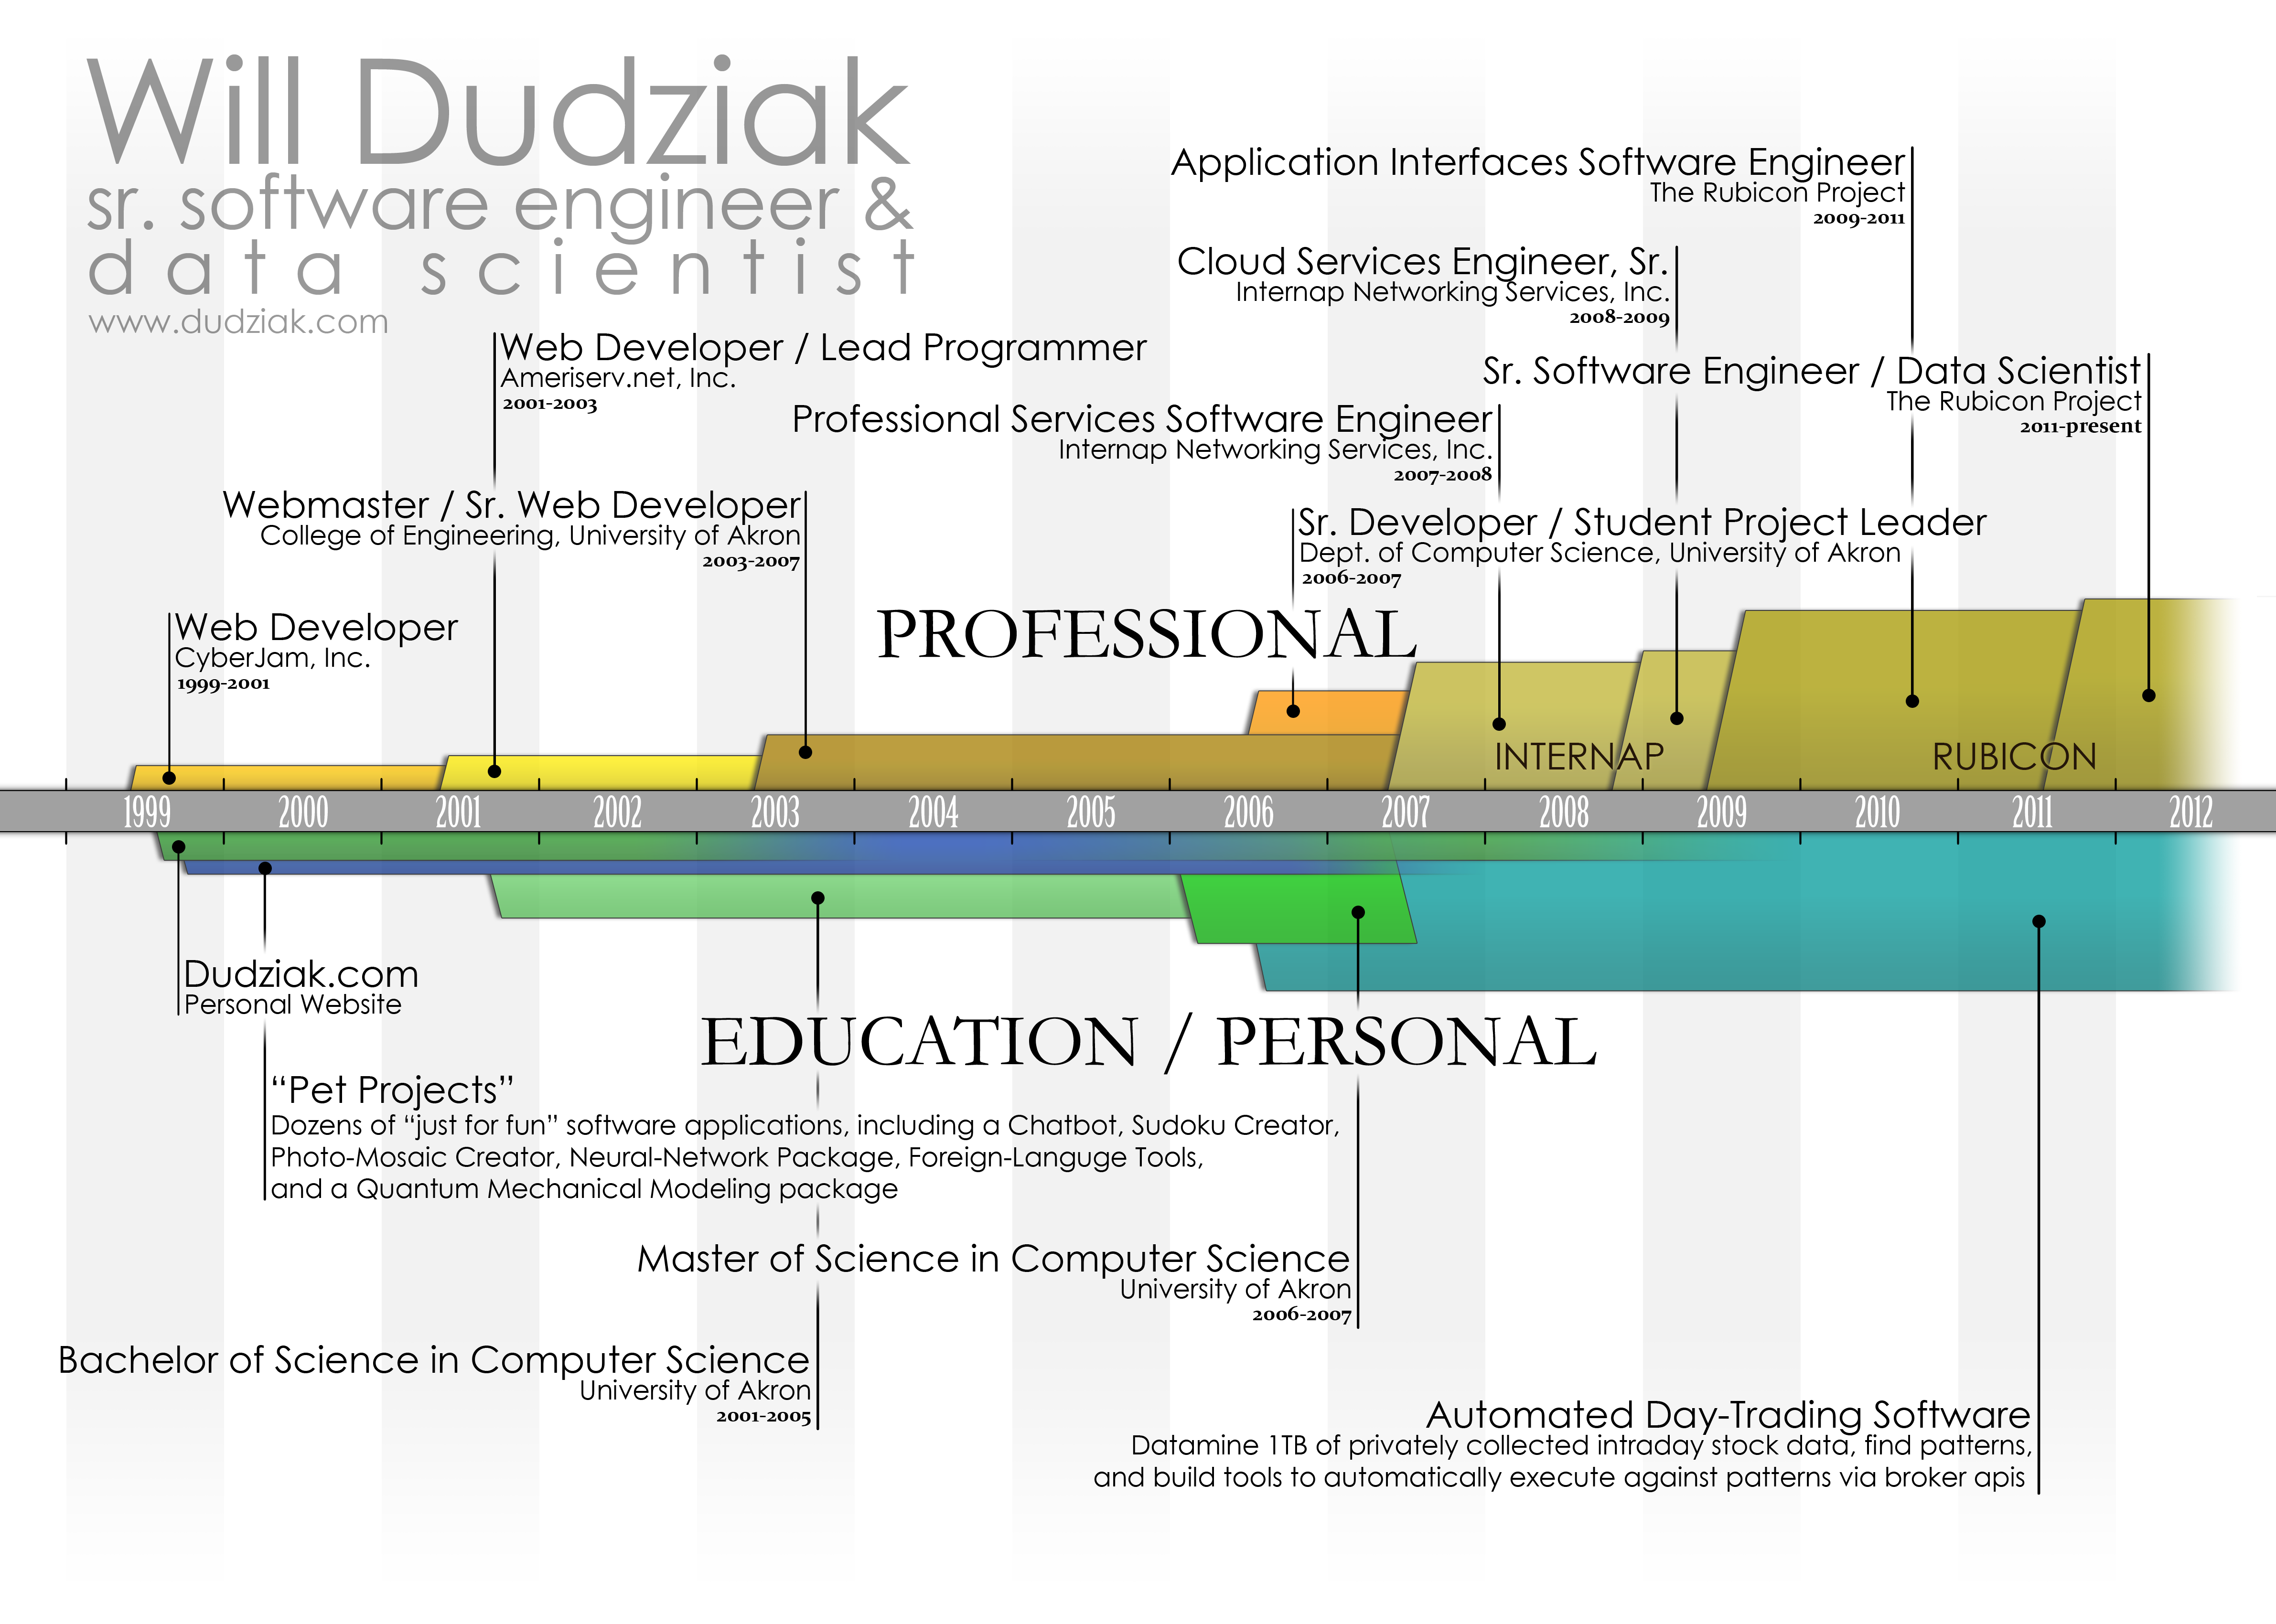 William Dudziak Sr Software Engineer Data Scientist Resume